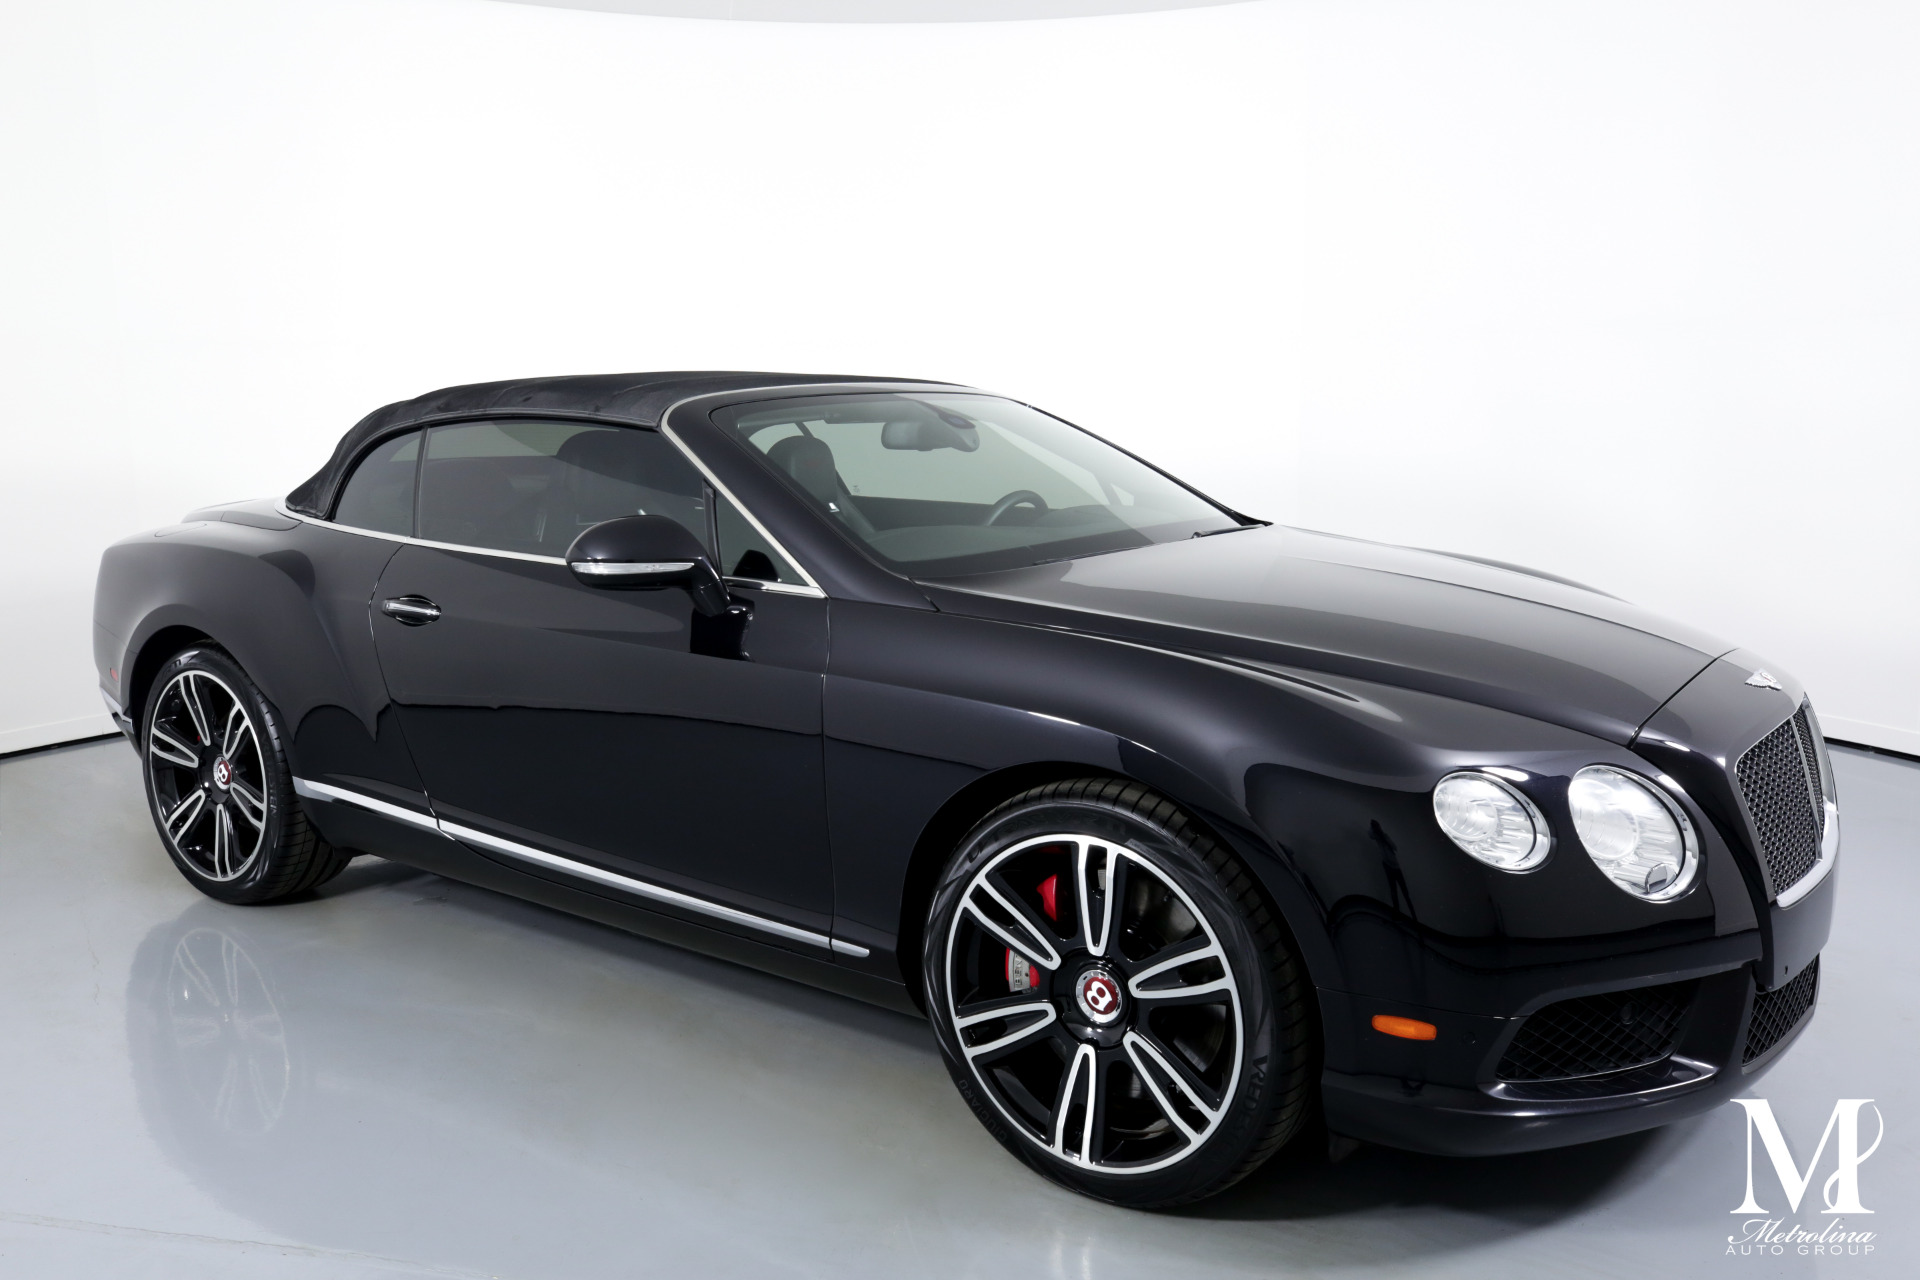 Used 2014 Bentley Continental GT V8 for sale $87,456 at Metrolina Auto Group in Charlotte NC 28217 - 2